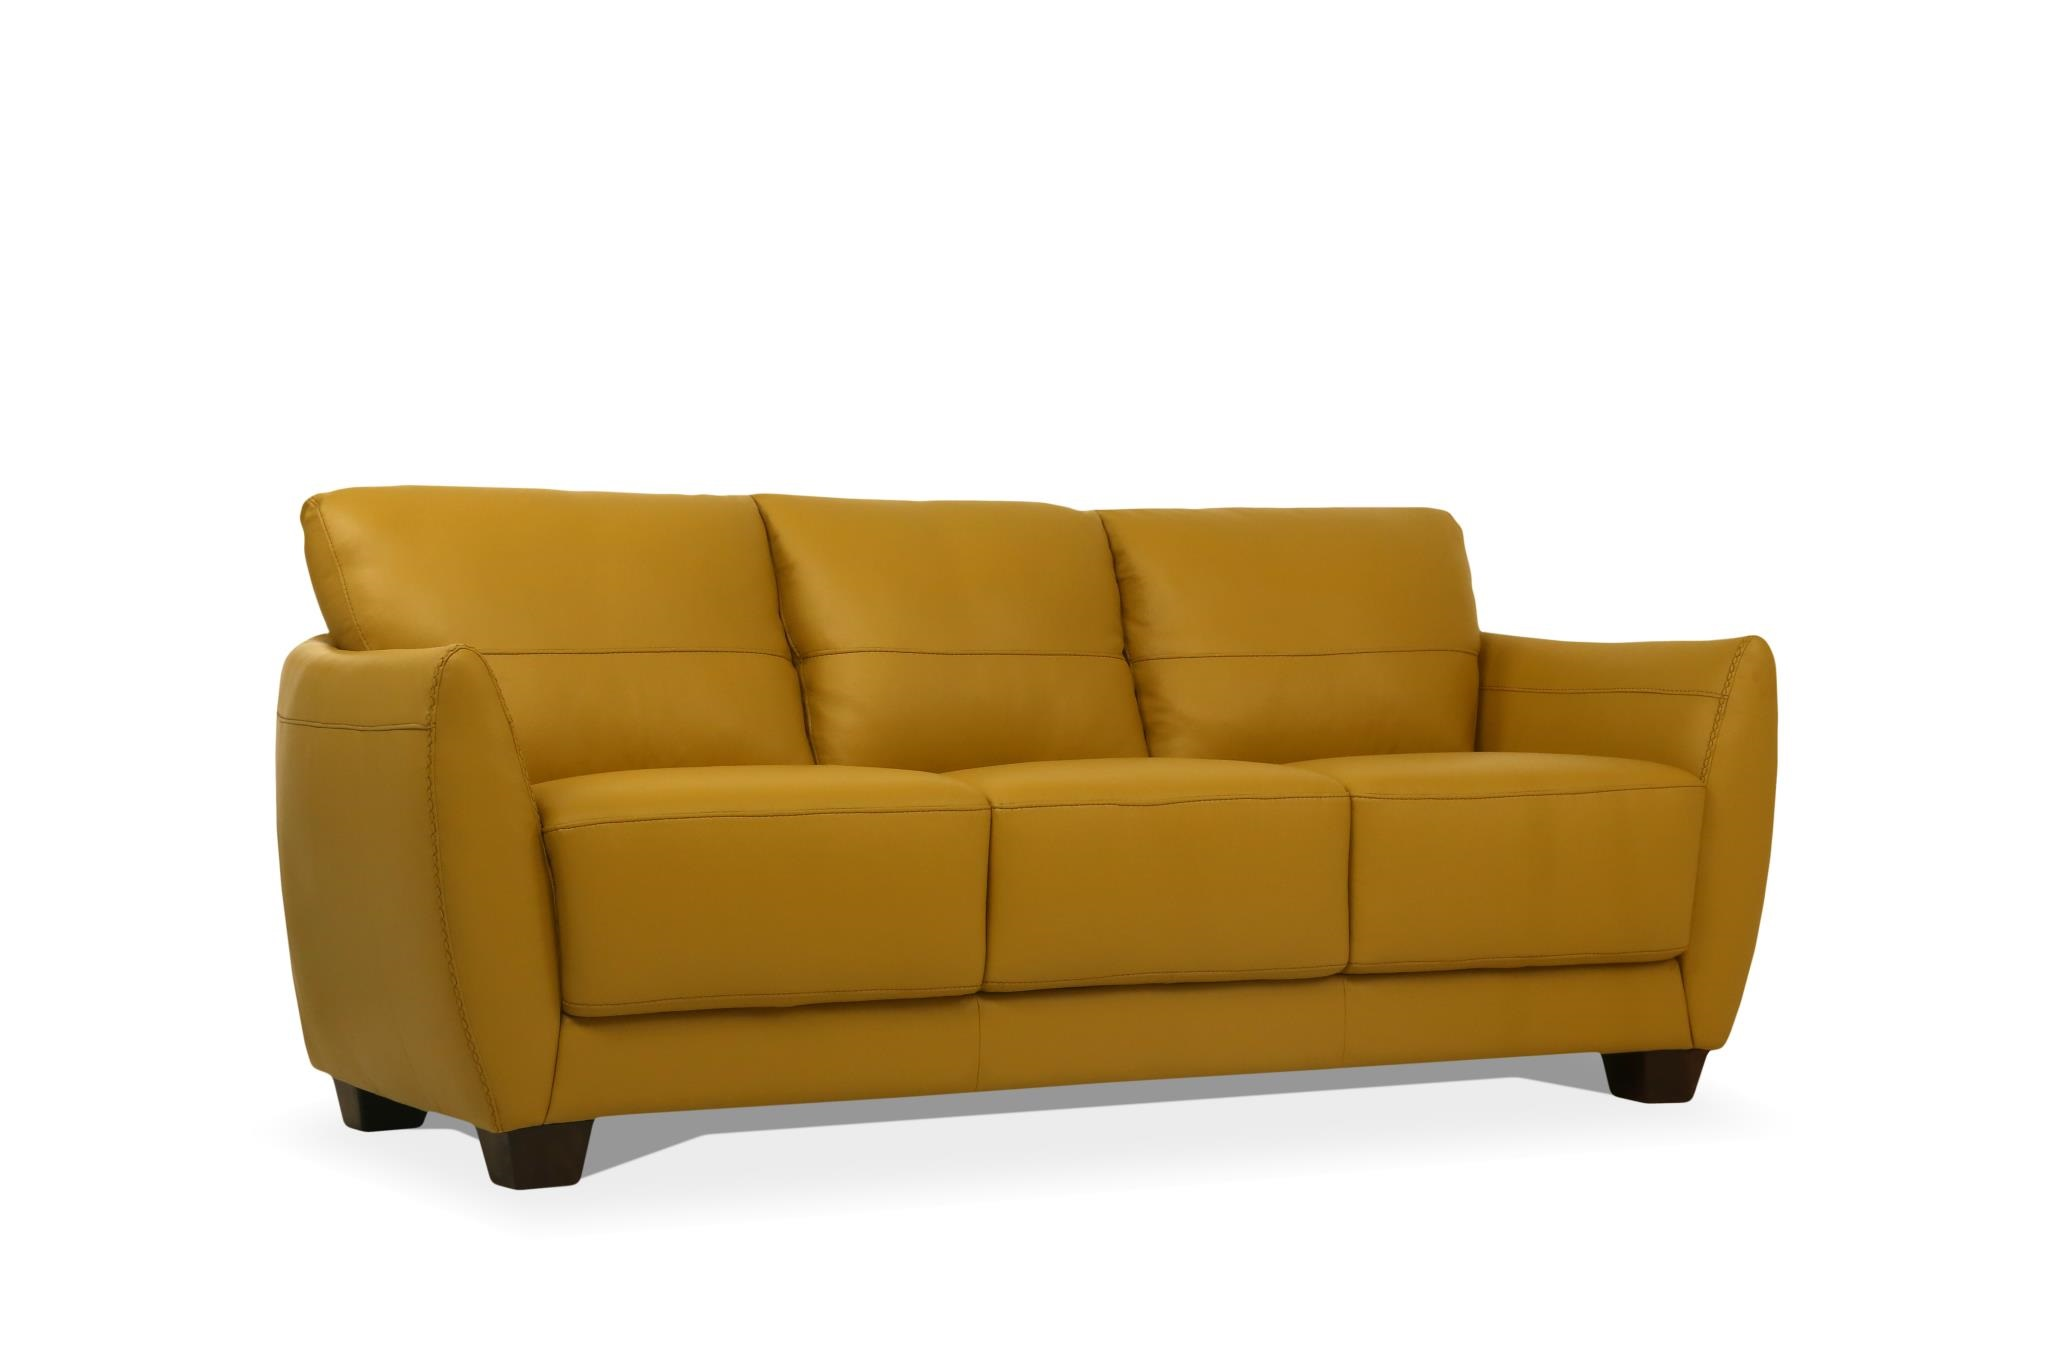 Valena Mustard Leather Sofa - Made In Italy